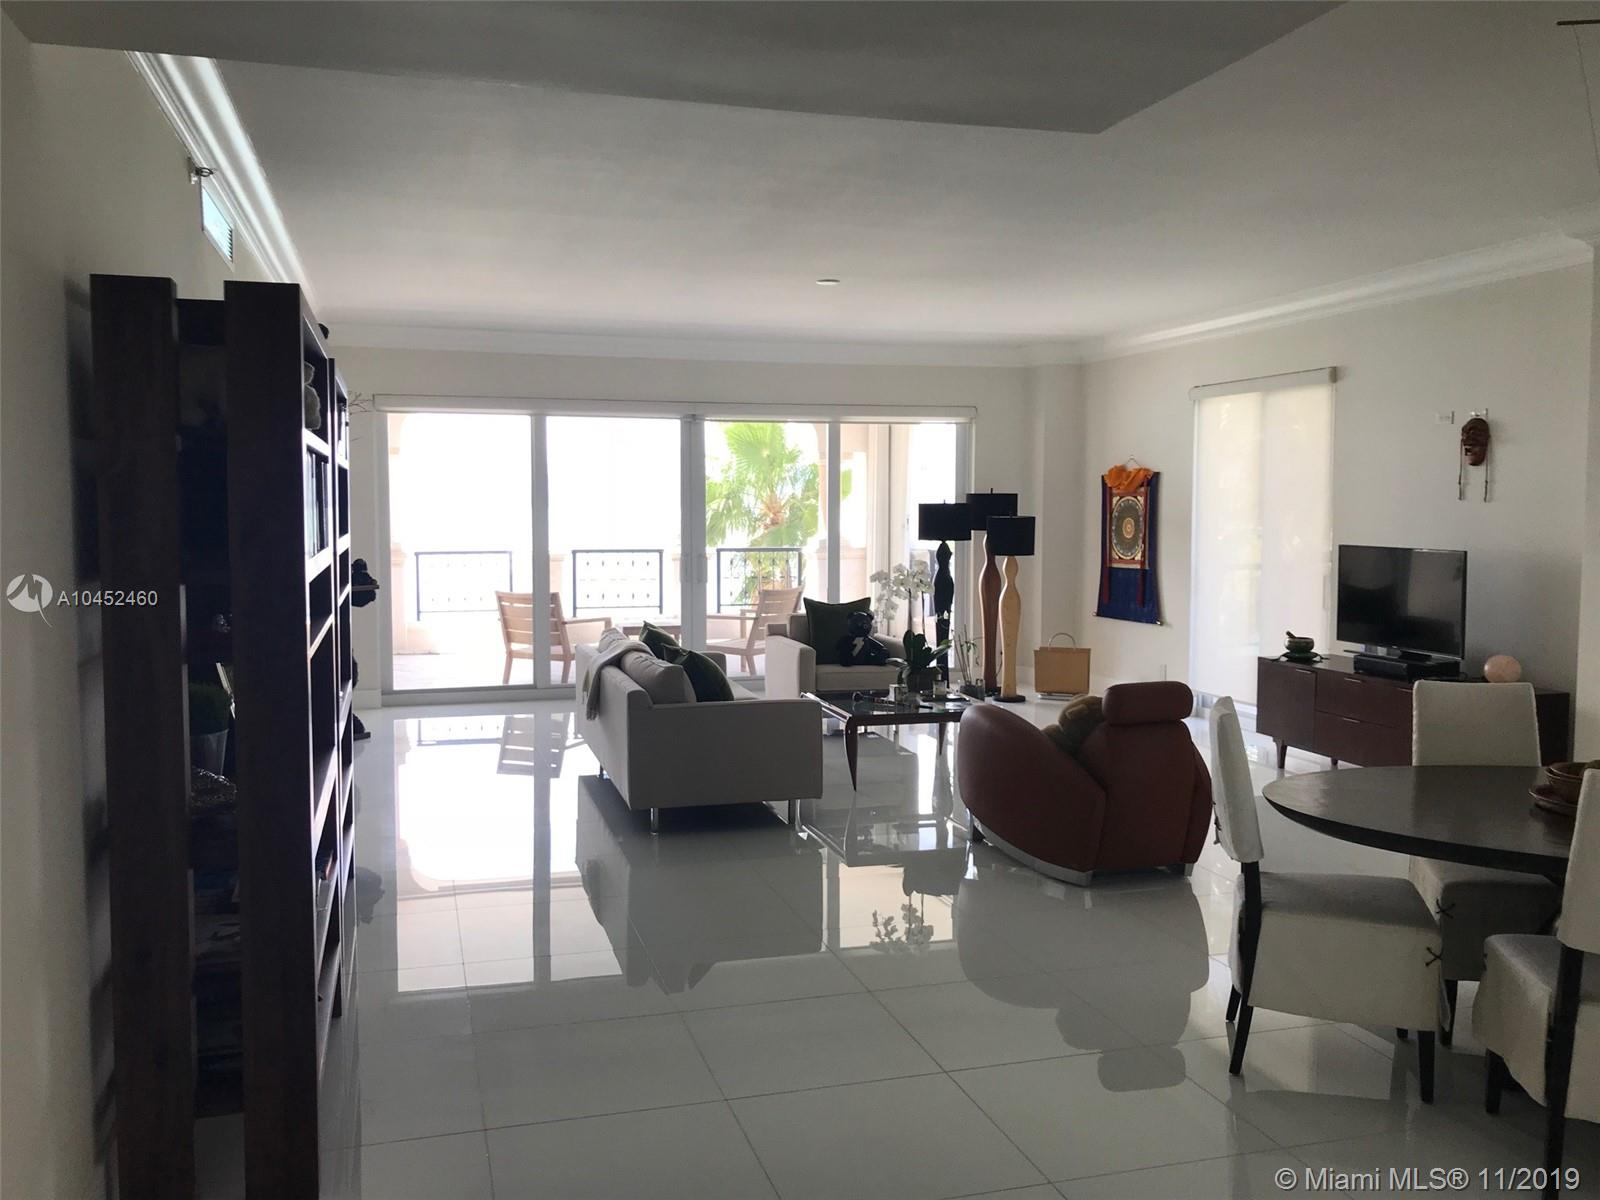 Bayview corner residence . Completely  renovated with beautiful white porcelain flooring  and upgraded appliances, Spacious bright rooms with unobstructed views of downtown Miami skyline and the bay.  Renovated building, pool area and landscaping.